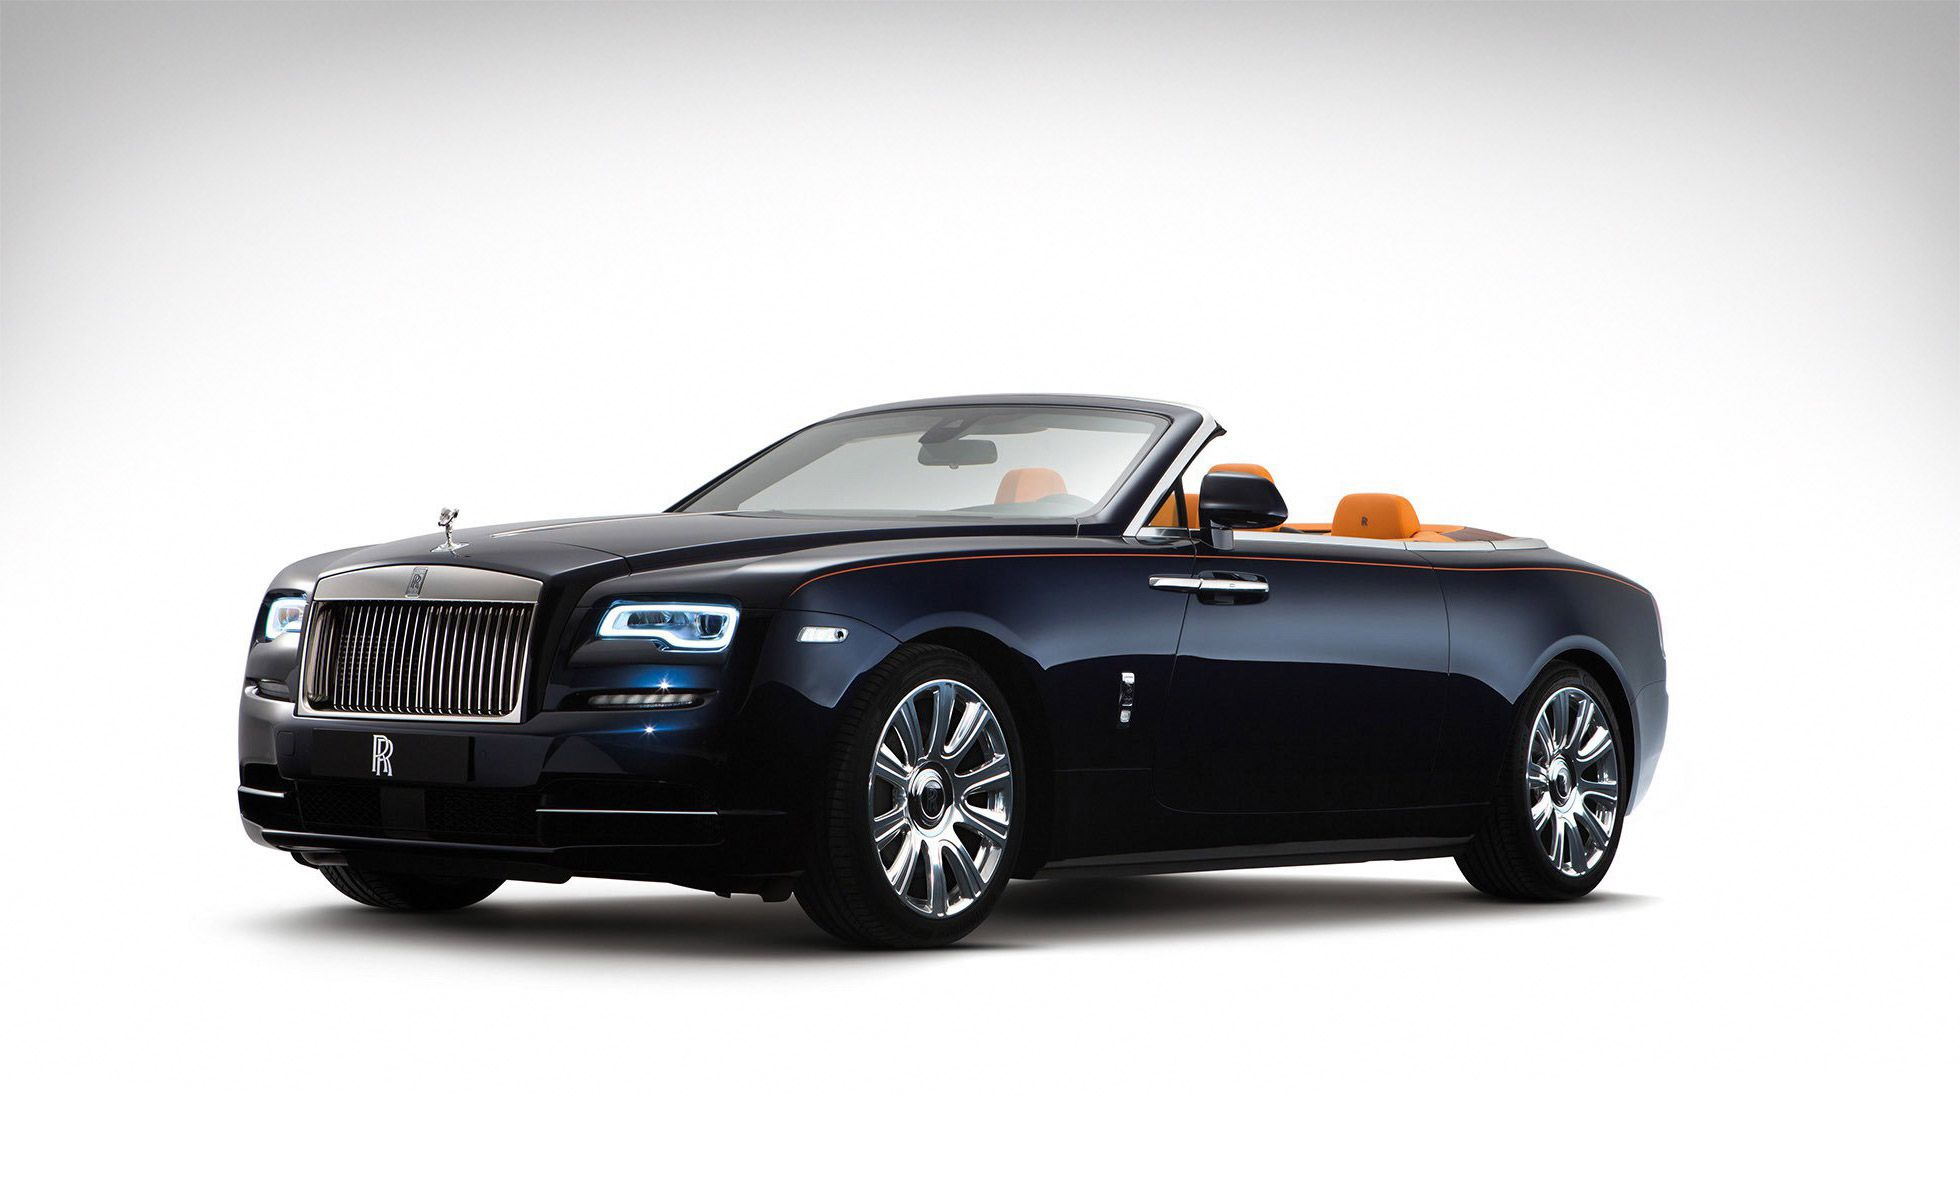 The Rolls-Royce Dawn is not entirely unlike the Ghost and Wraith in aesthetic, yet it's still different enough to stand apart and justify its own distinct name, notably thanks to its convertible design. The drophead